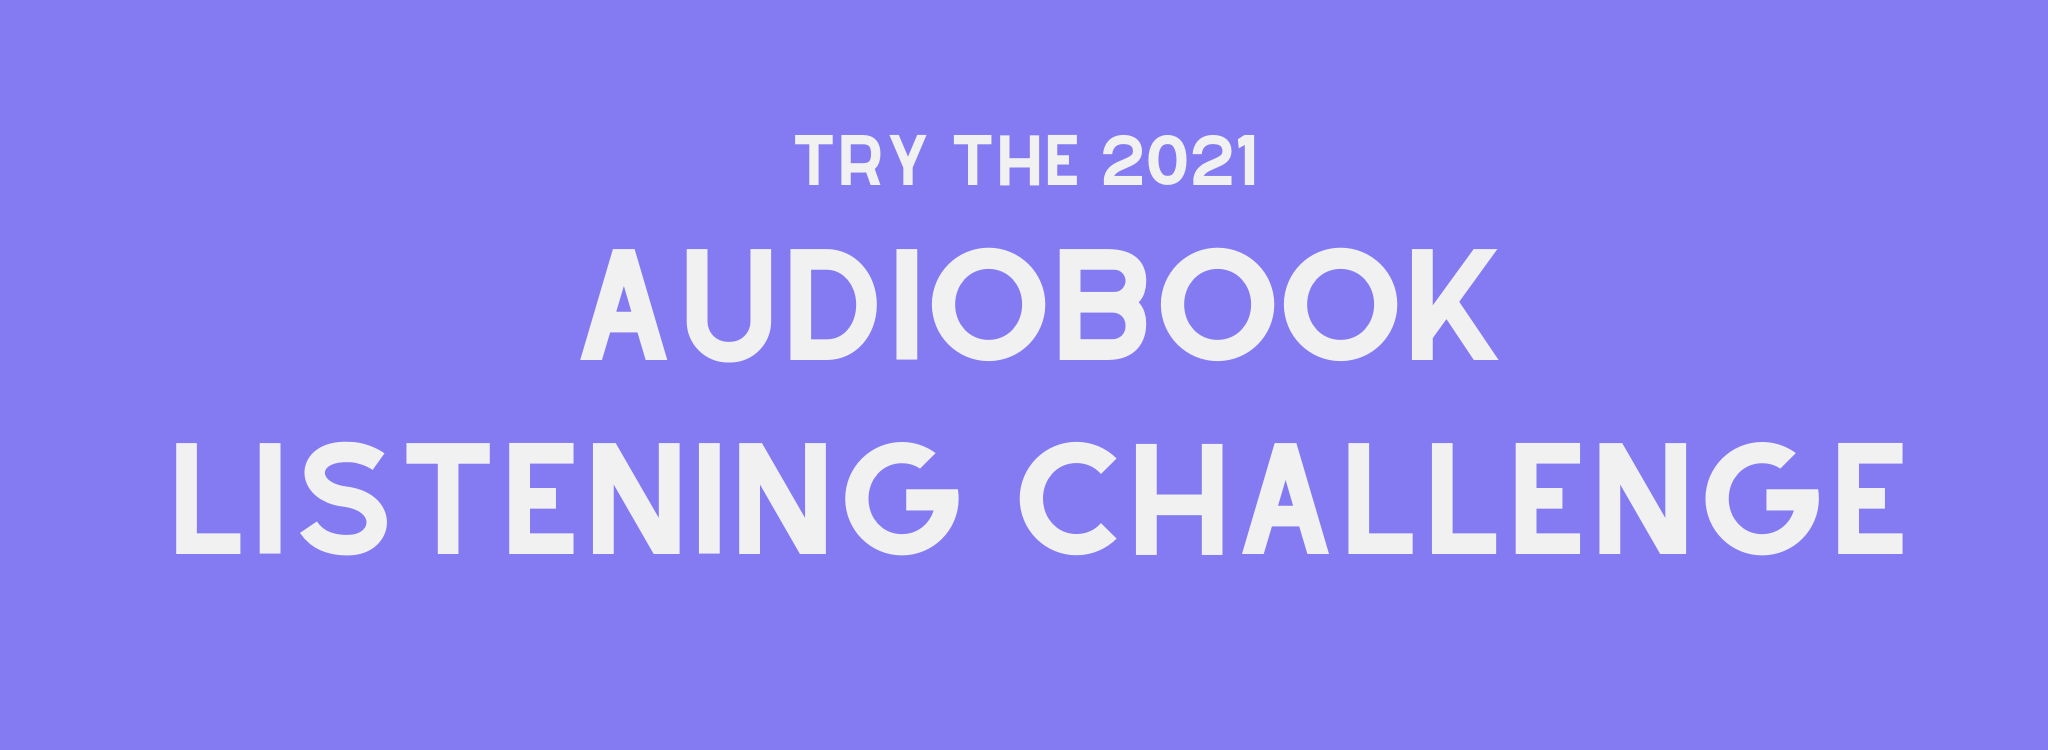 A purple background with white text headline that reads Try the 2021 Audiobook Listening Challenge